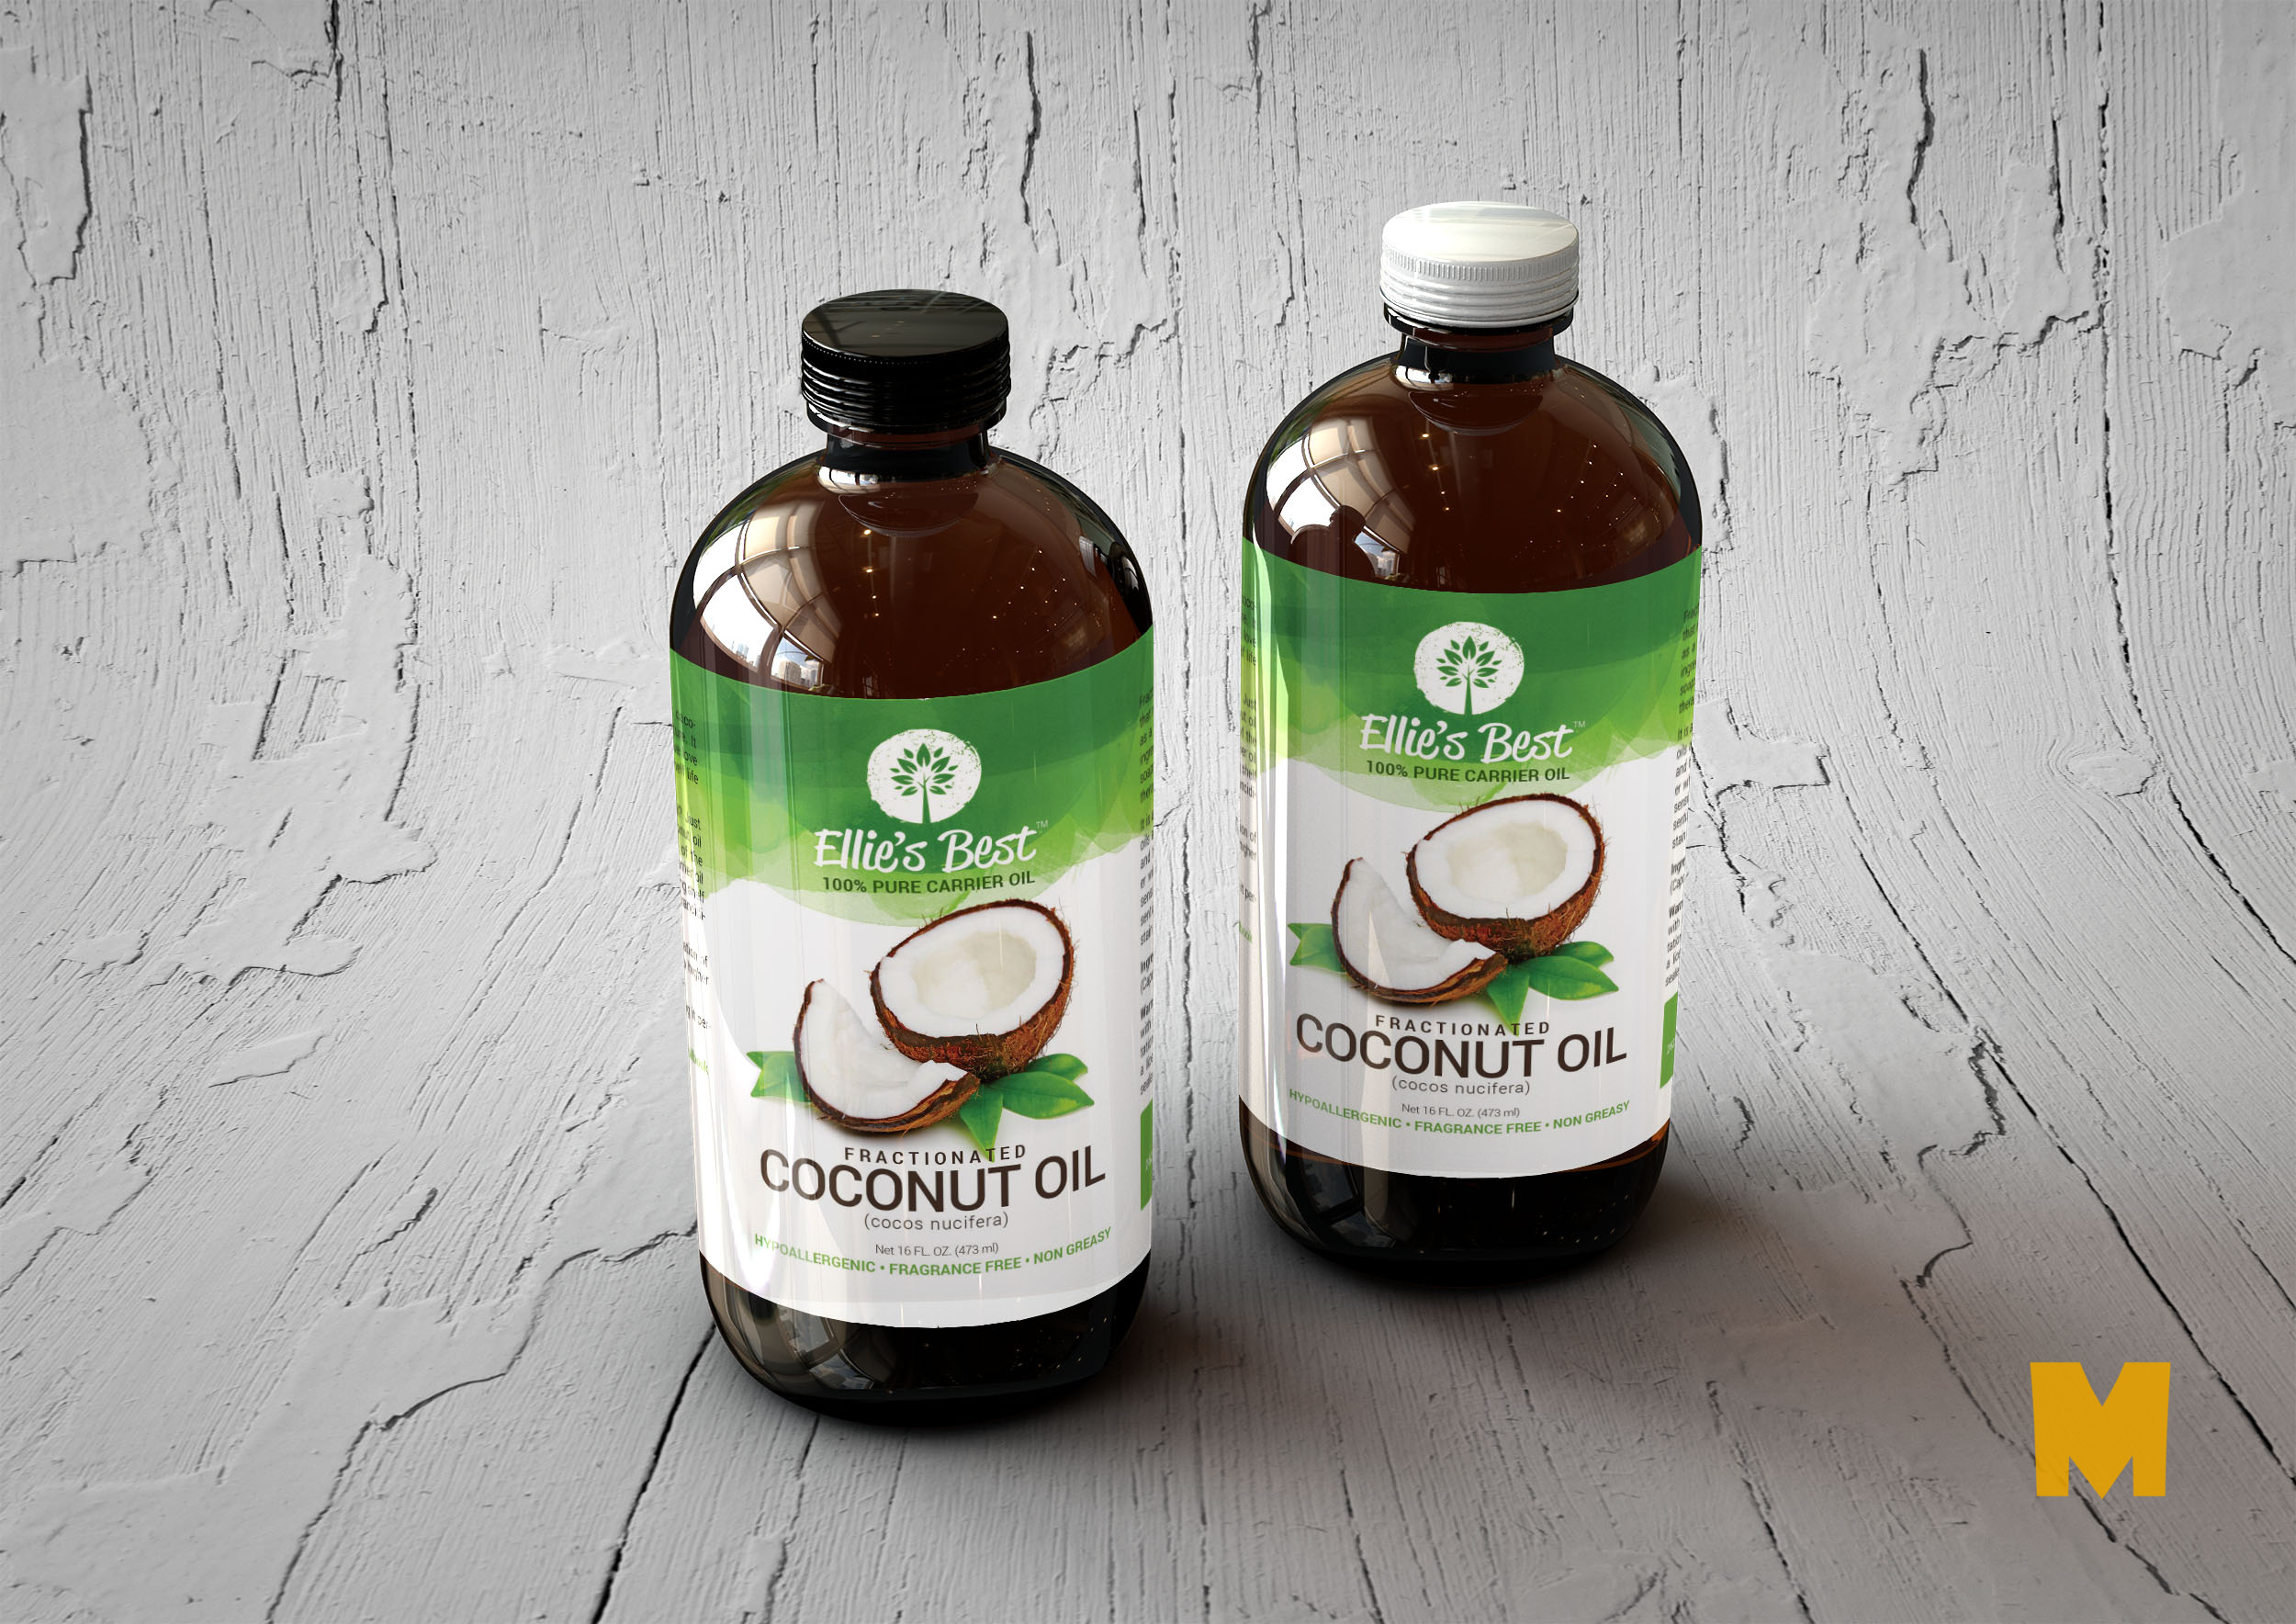 Free PSD Coconut Oil Bottle Label MockUp